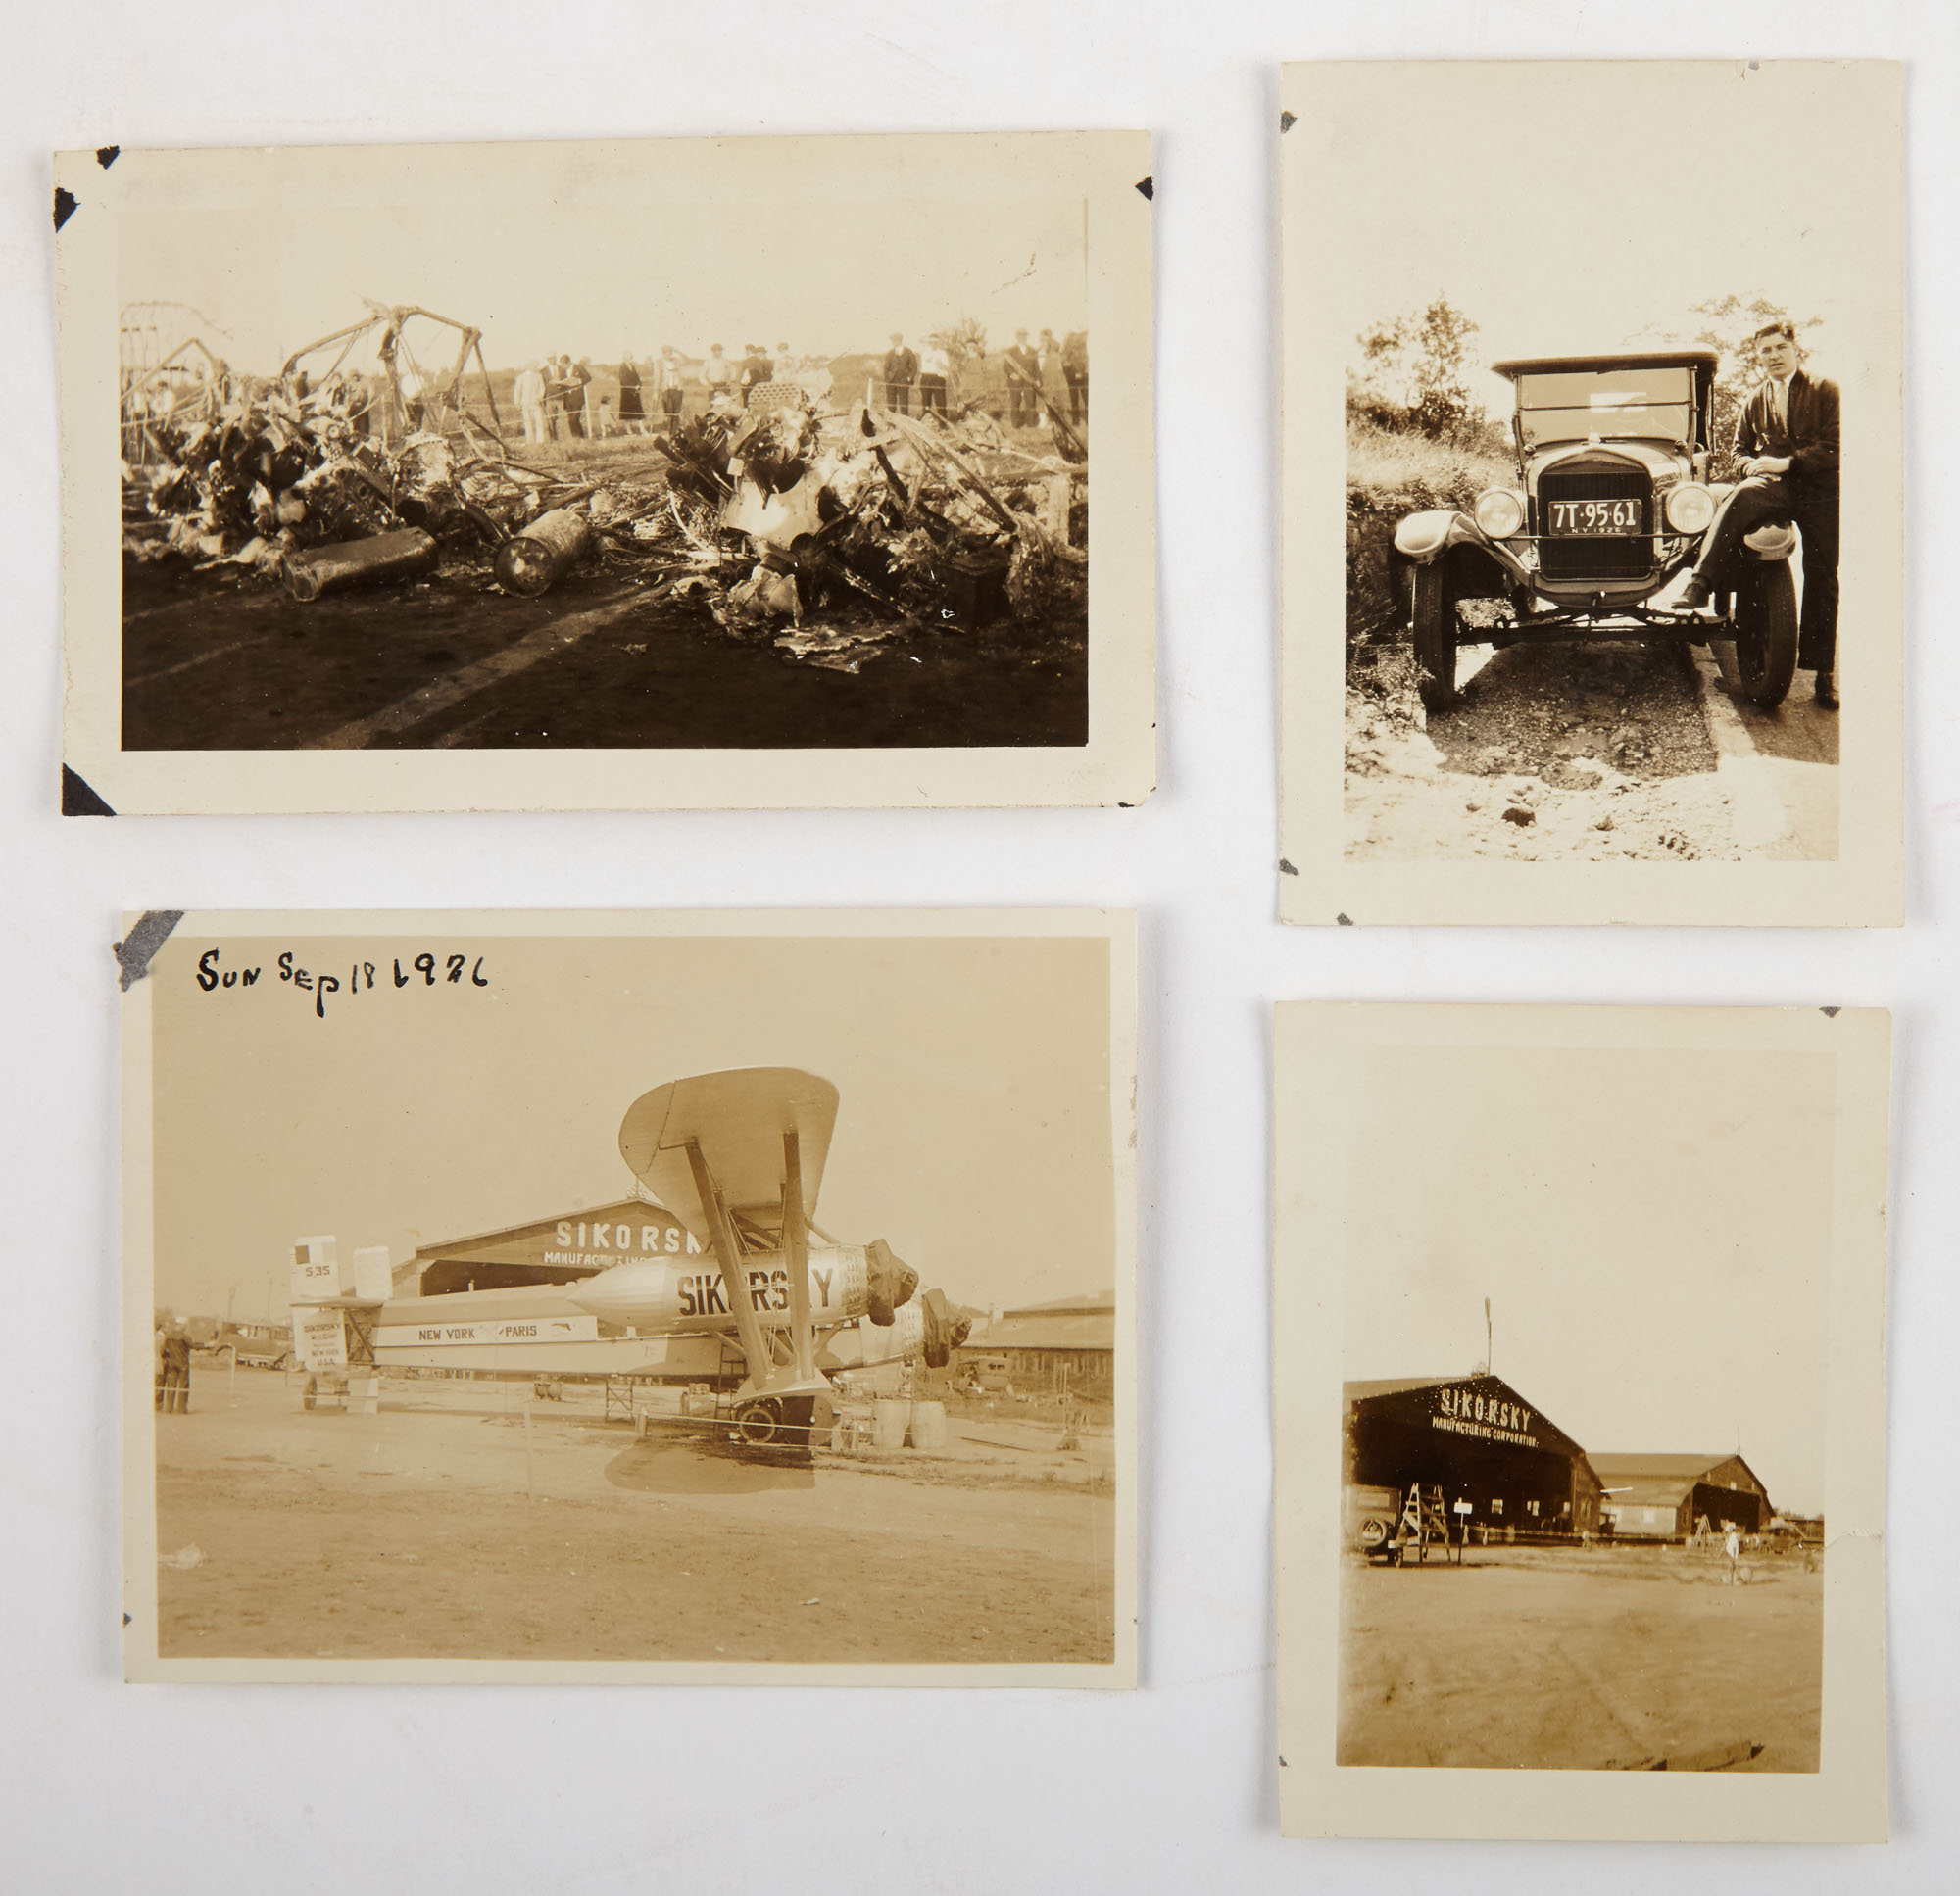 Lot image - [AVIATION]  Photographs of the wreck of the Sikorsky S-35, 1926.